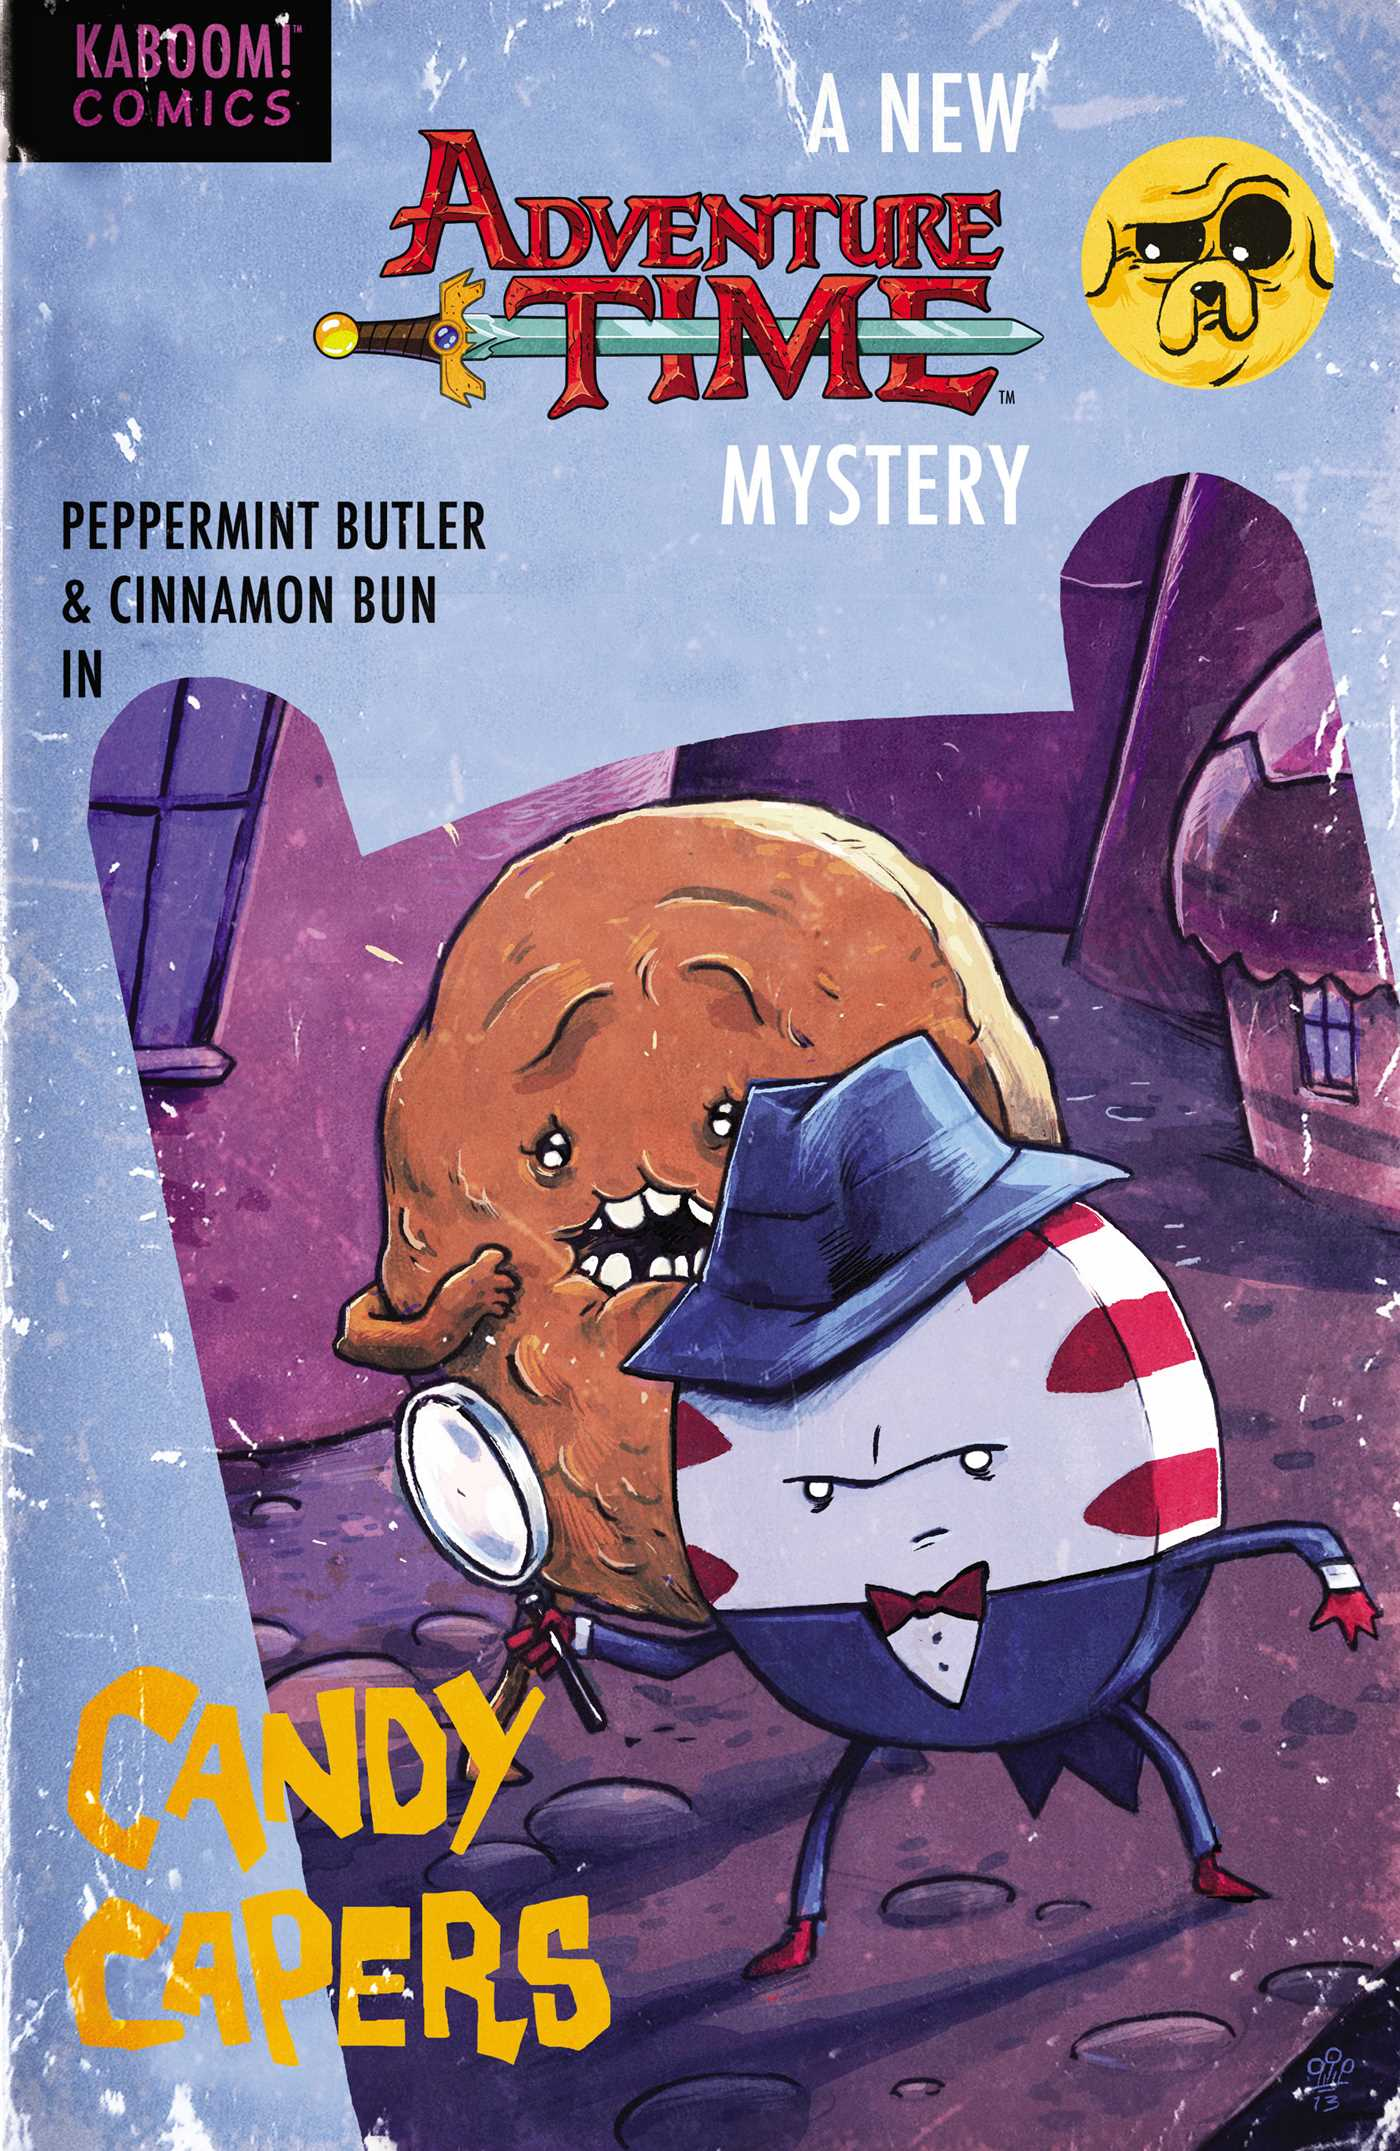 Adventure time candy capers 9781608863655 hr